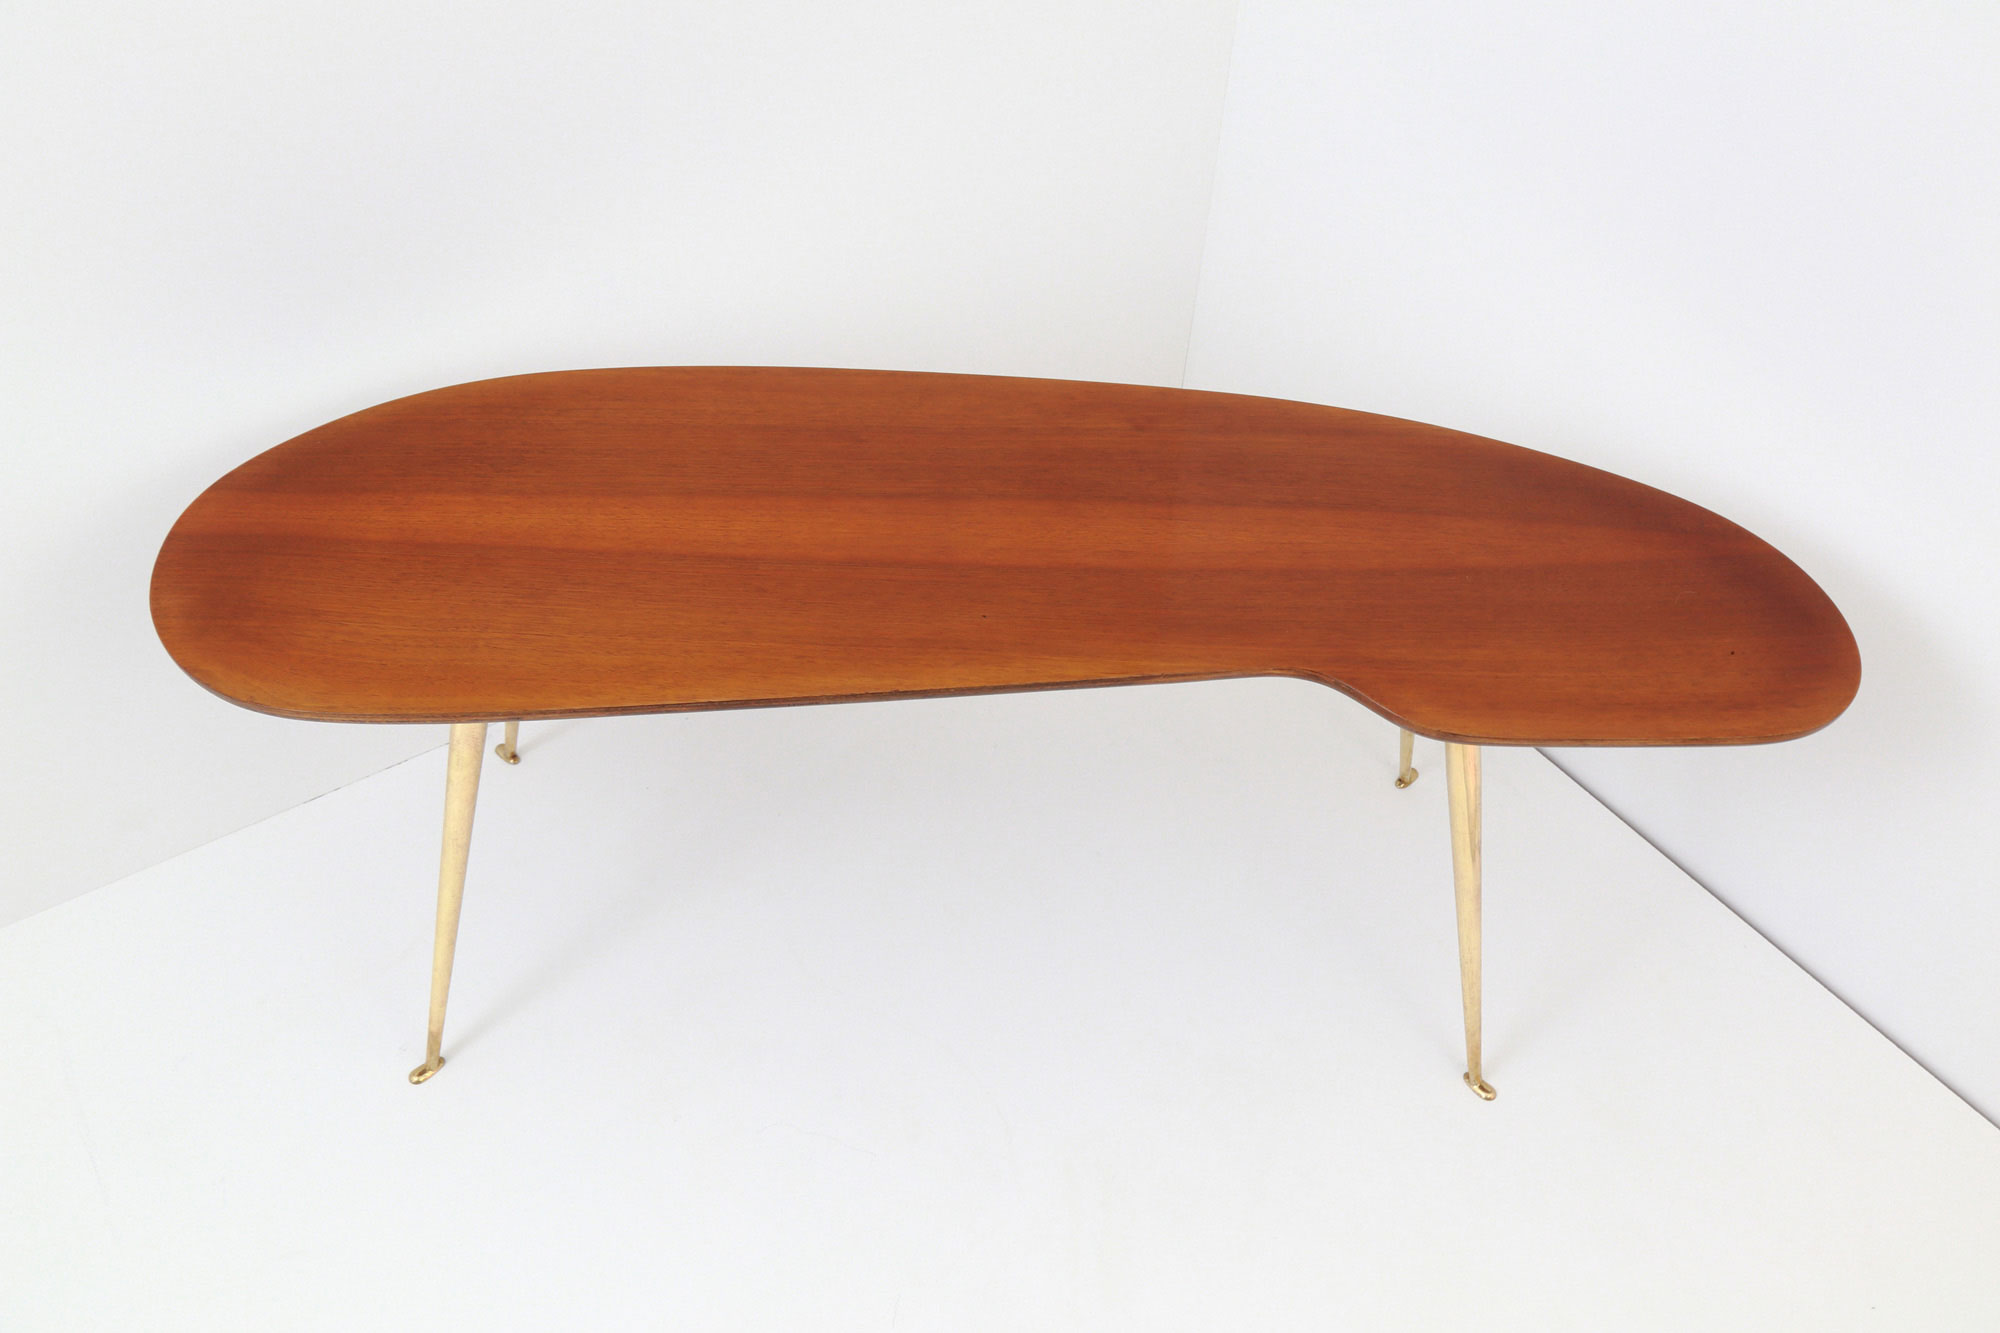 Wooden Freeform Coffee Table with Brass Legs • Cupio Gallery